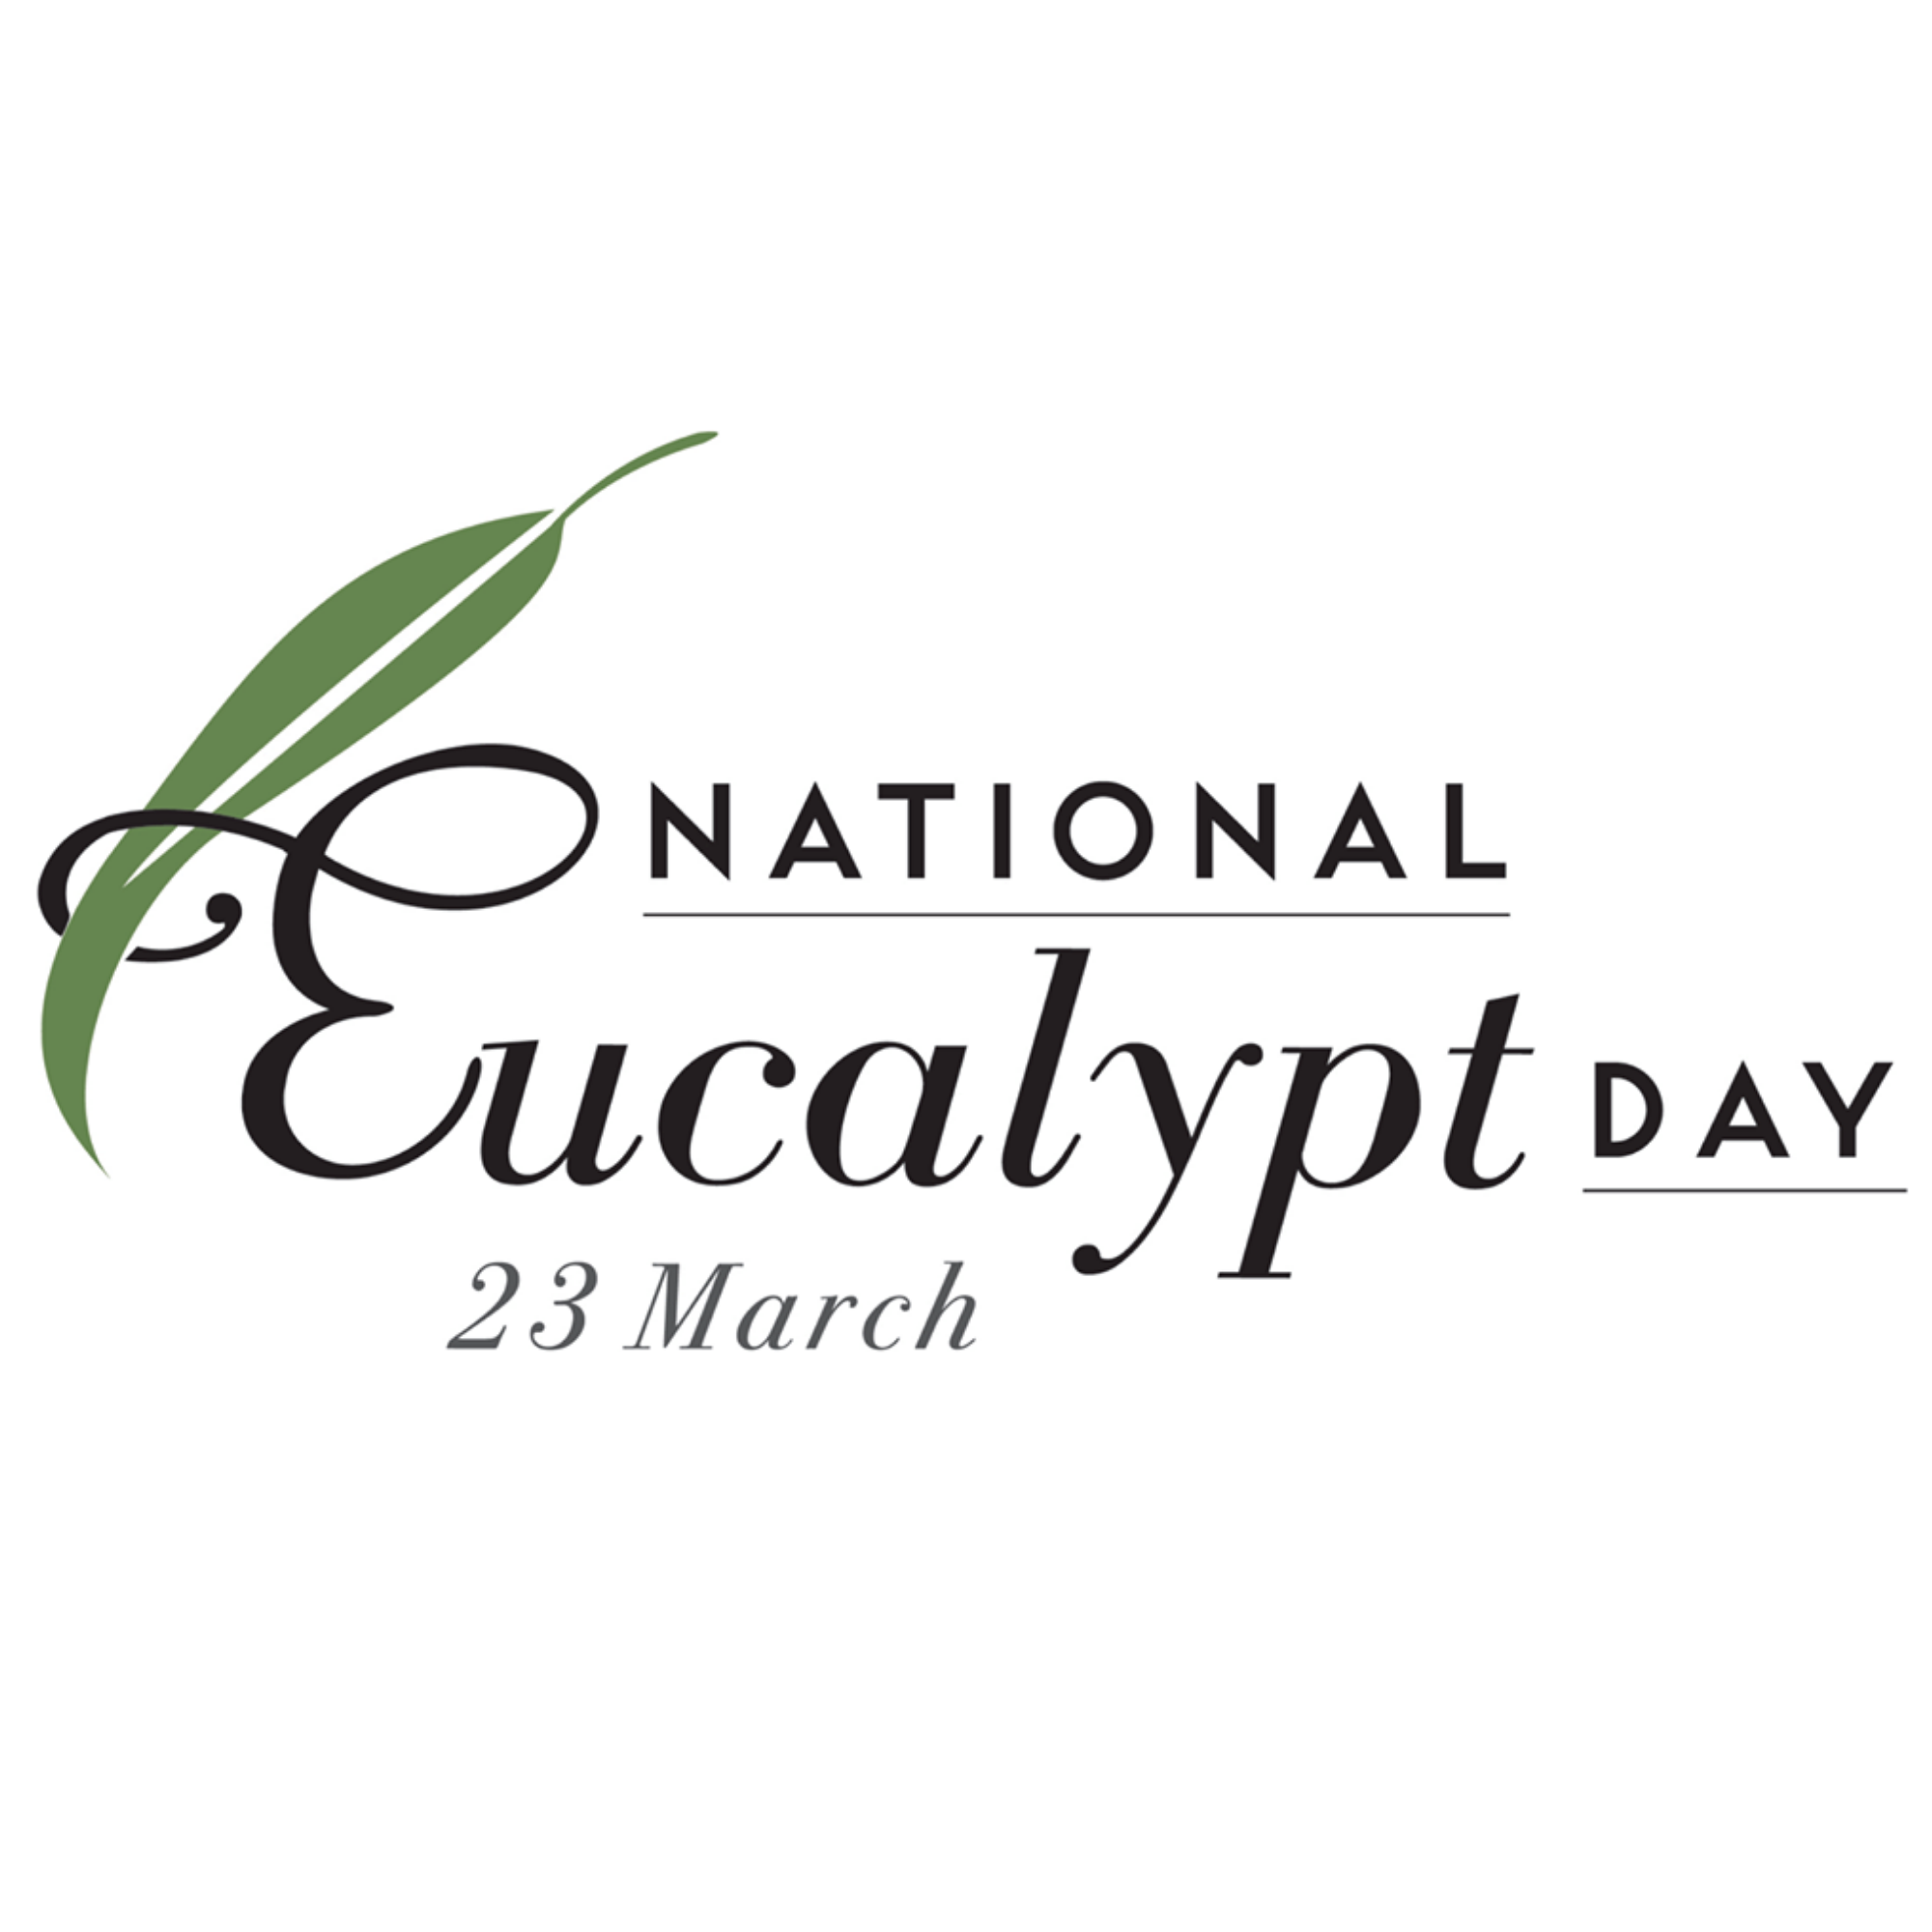 National Eucalypt Day 2018